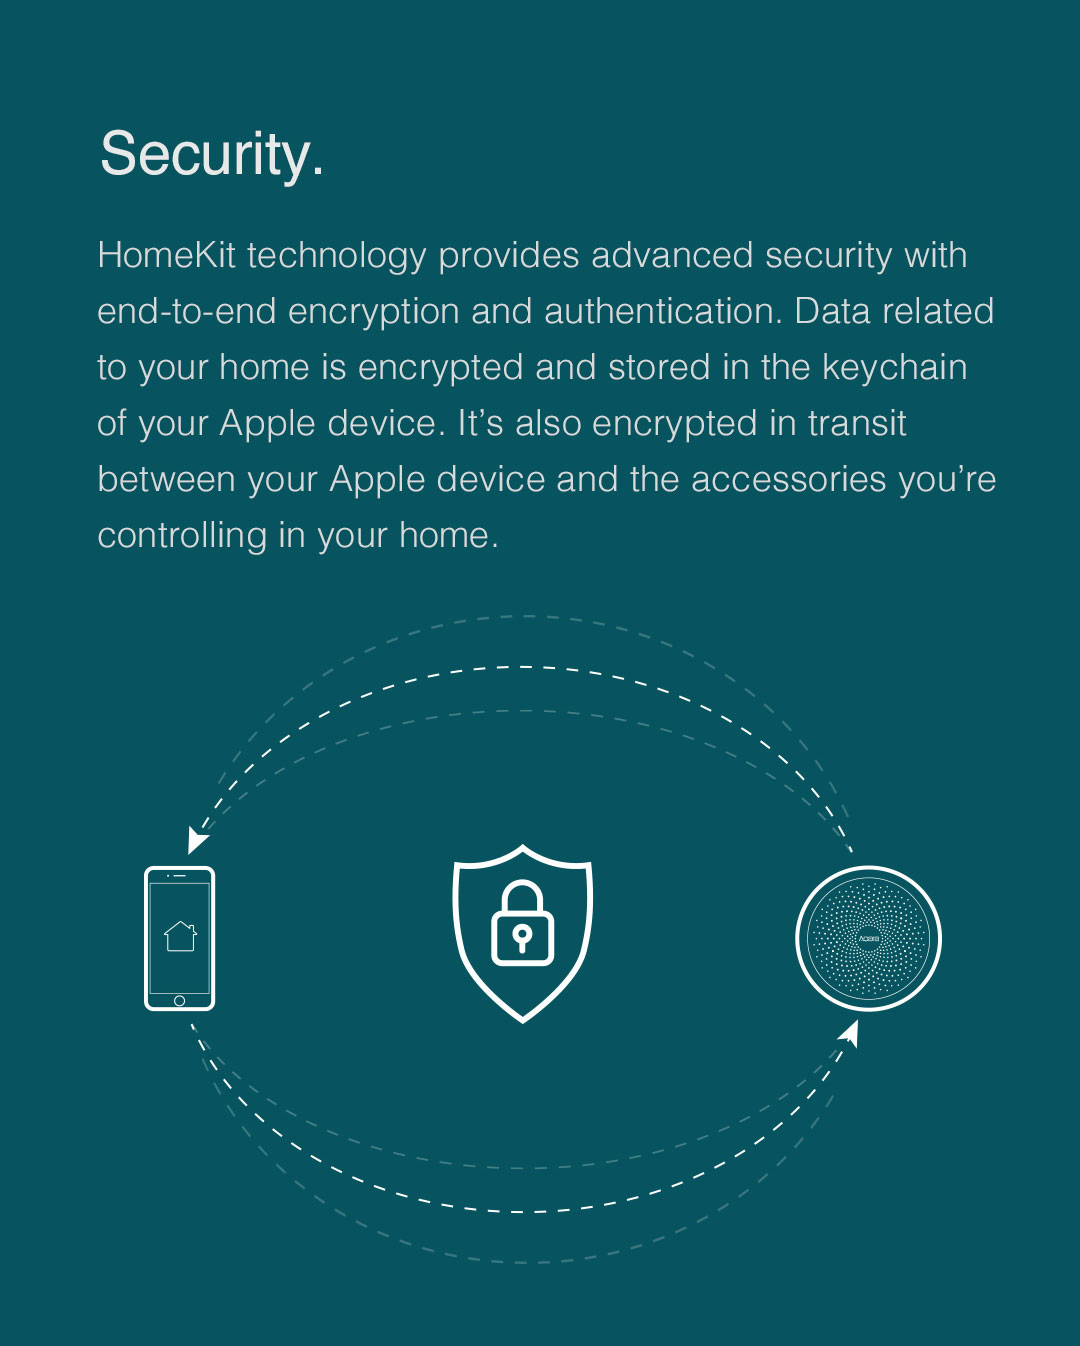 HomeKit technology provides advanced security with end-to-end encryption and authentication with Aqara us hub.